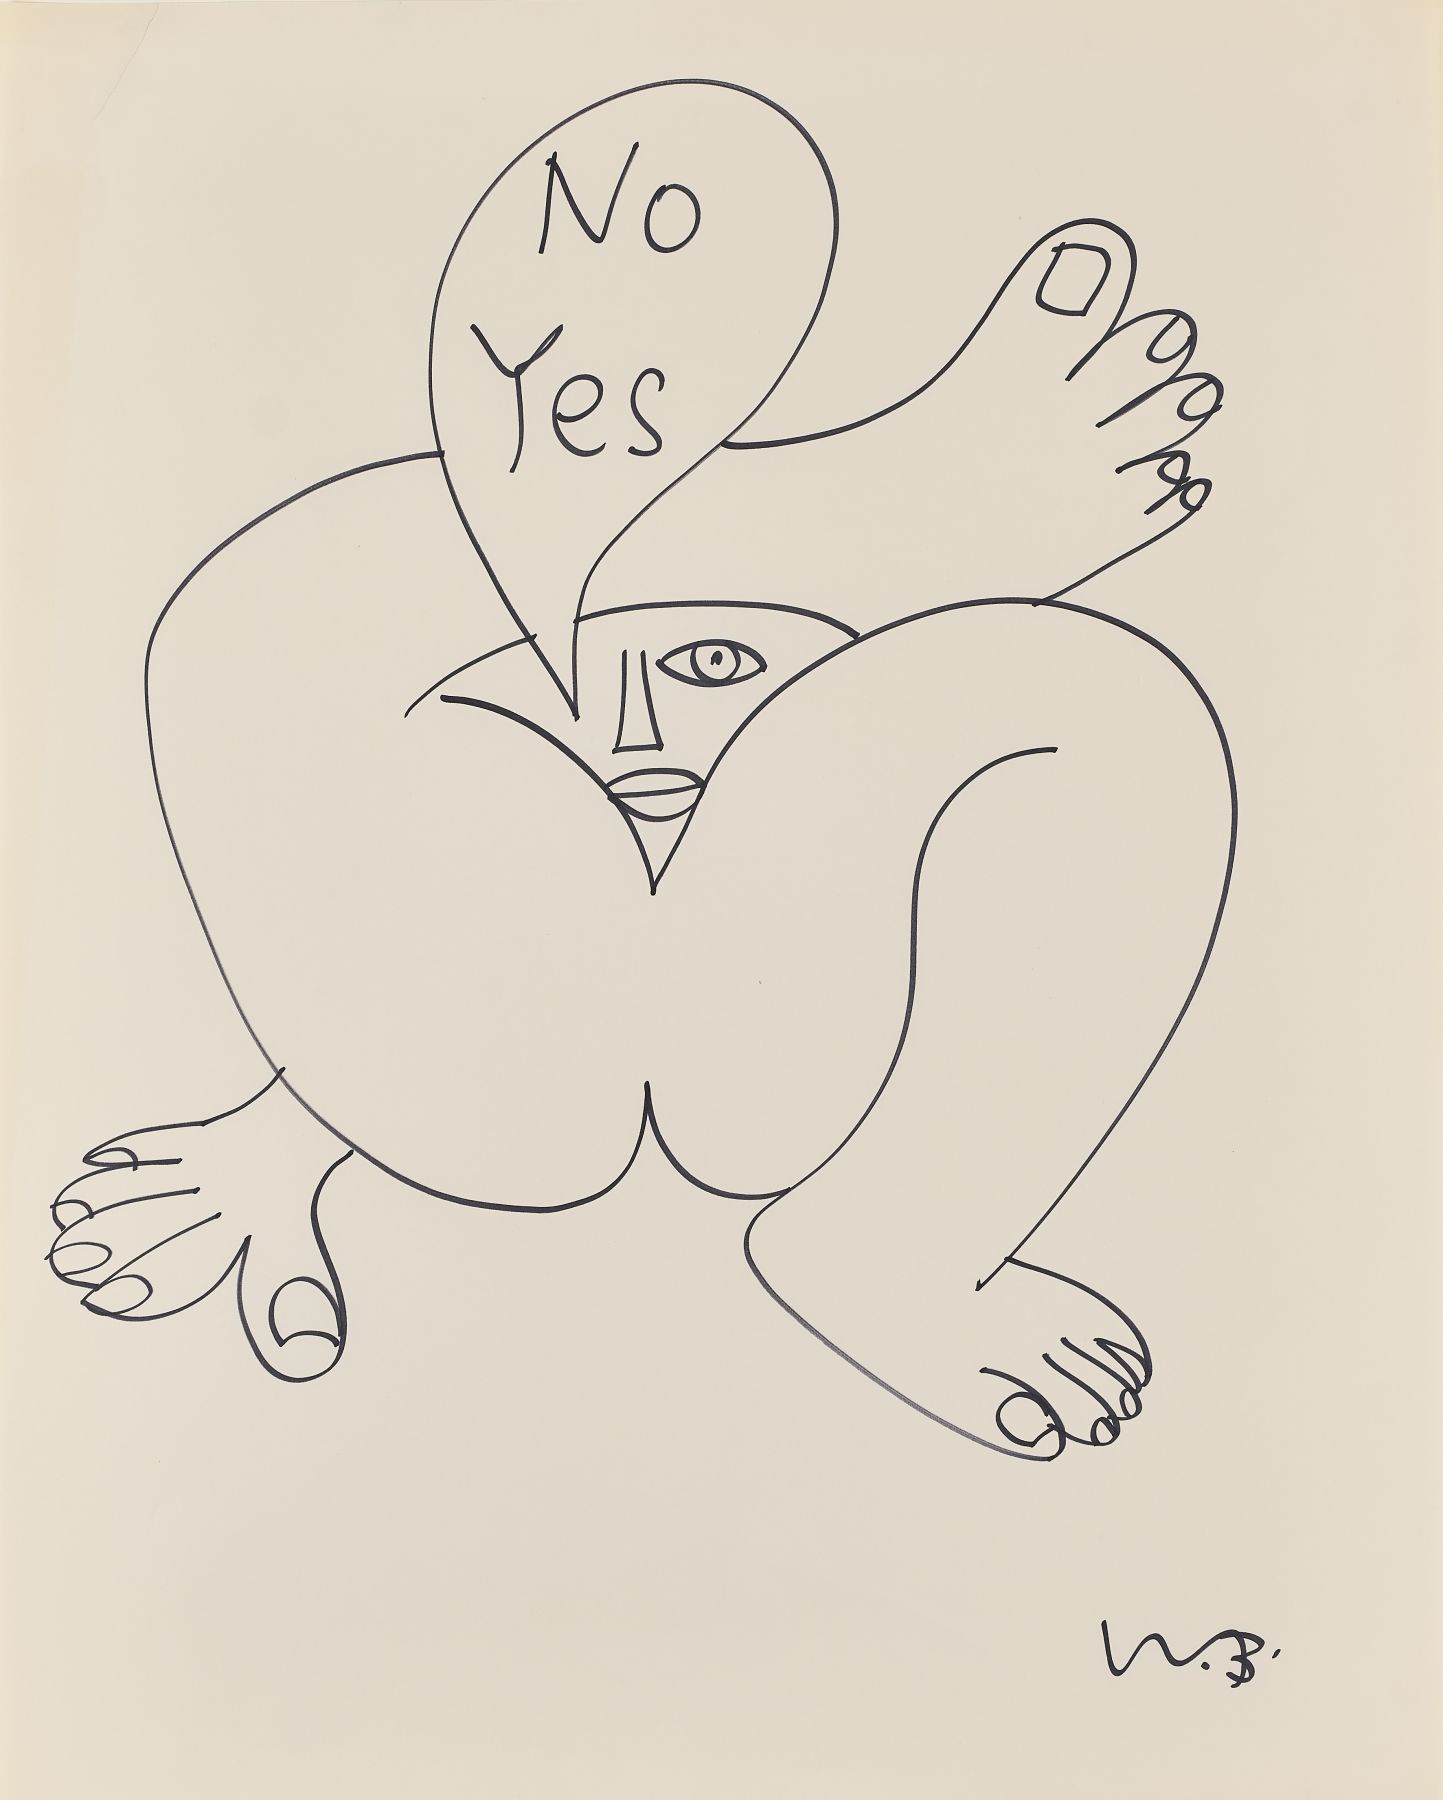 Walter Battiss - Untitled (No Yes, face through crossed legs), 1970